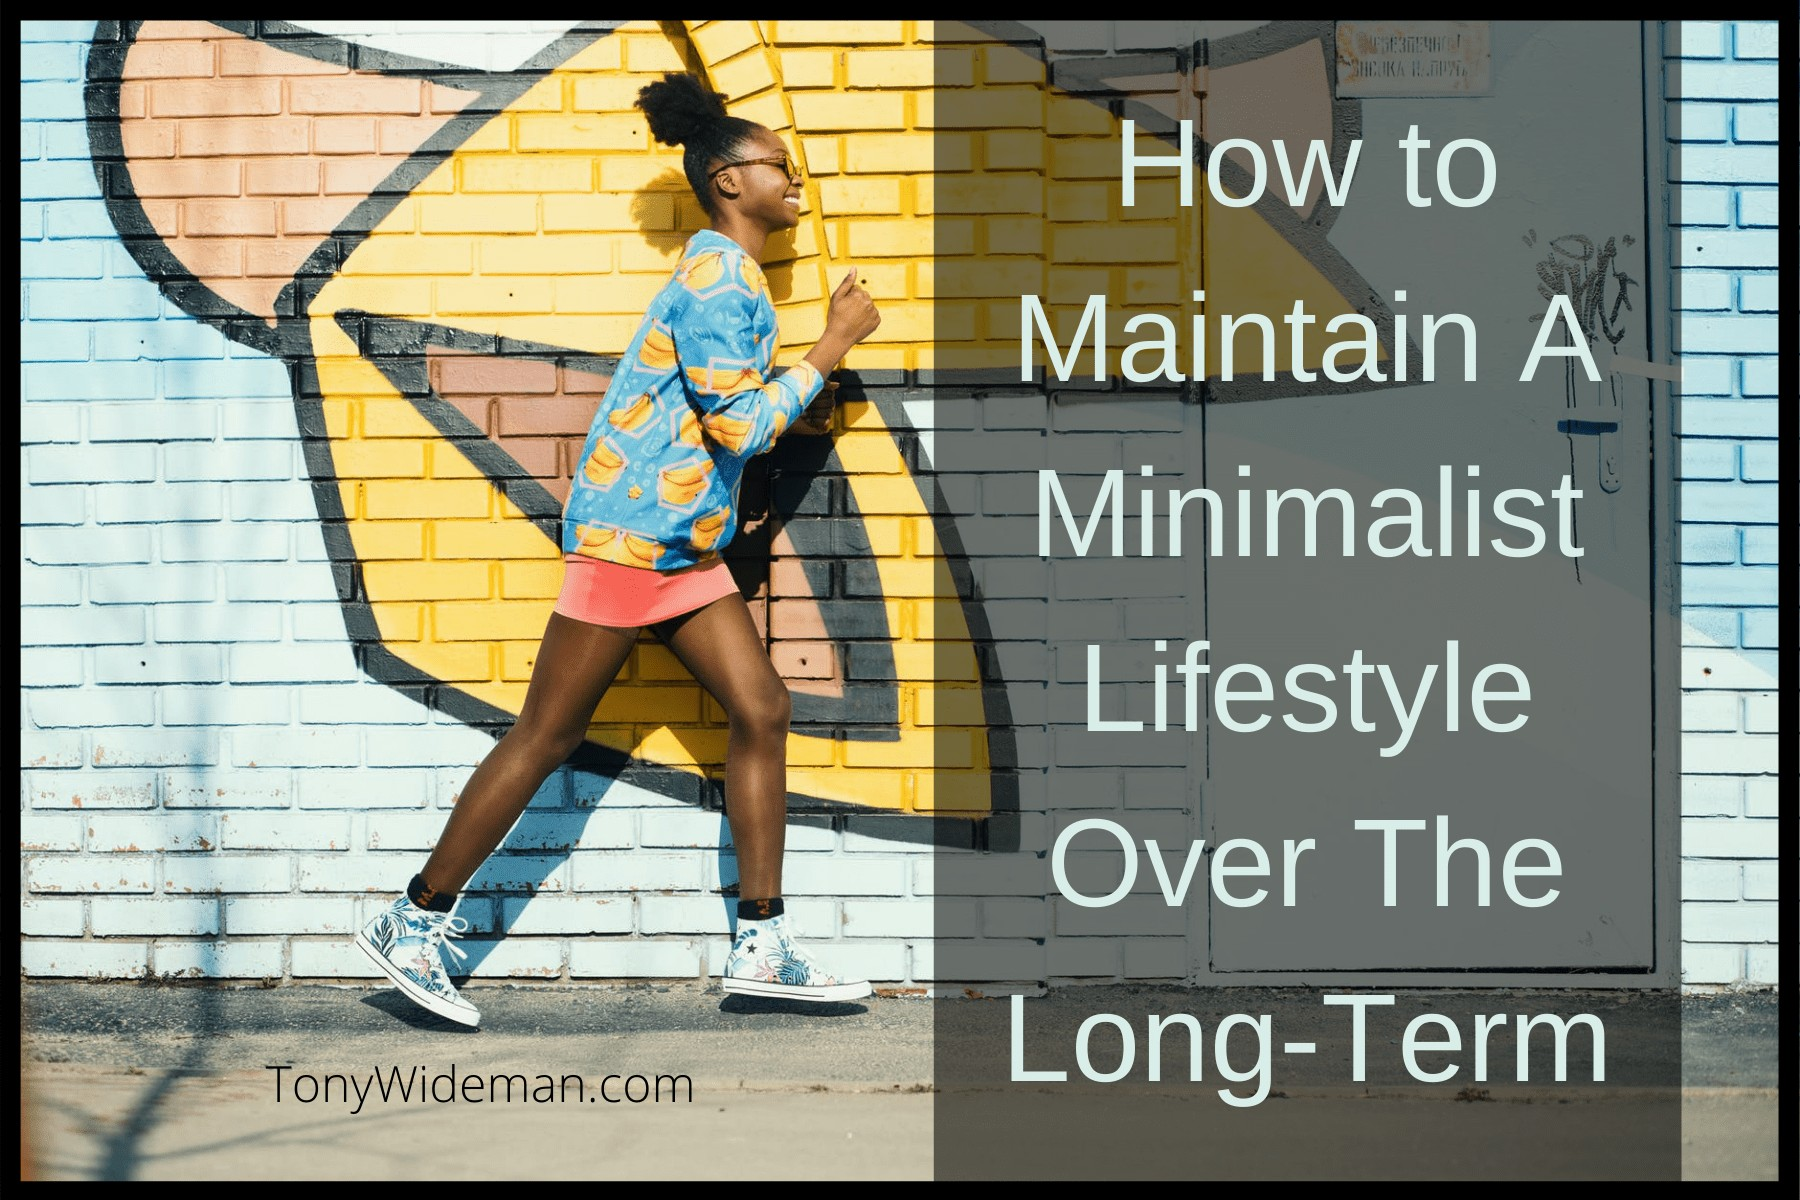 How to Maintain A Minimalist Lifestyle Over The Long Term